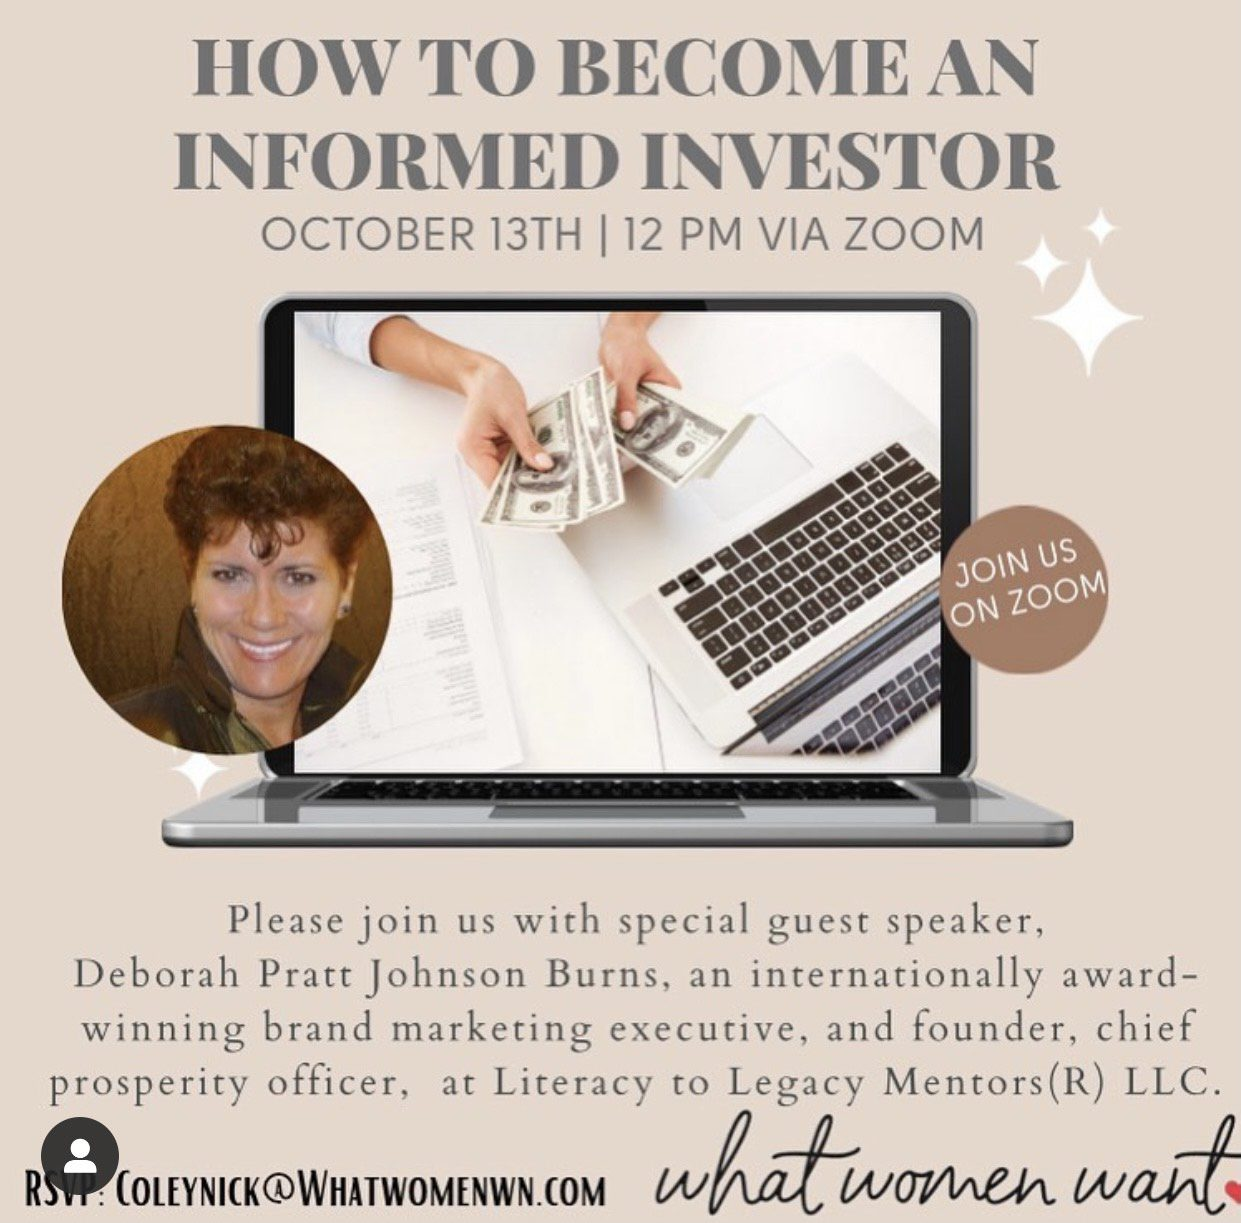 How To Become An Informed Investor